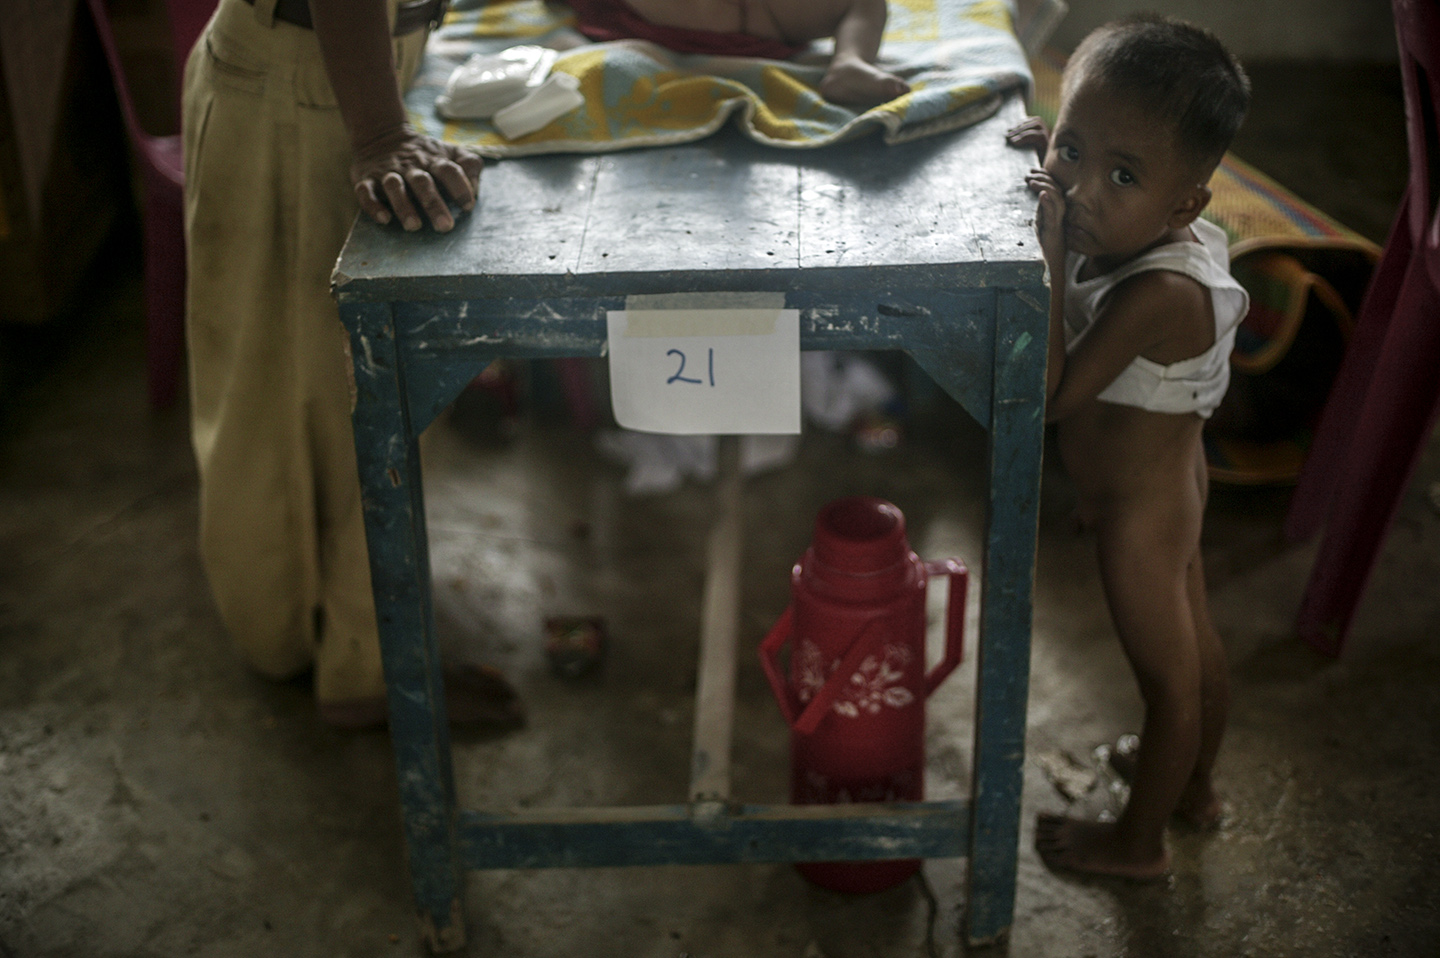 A boy stands in his own diarrhea as he waits for treatment.